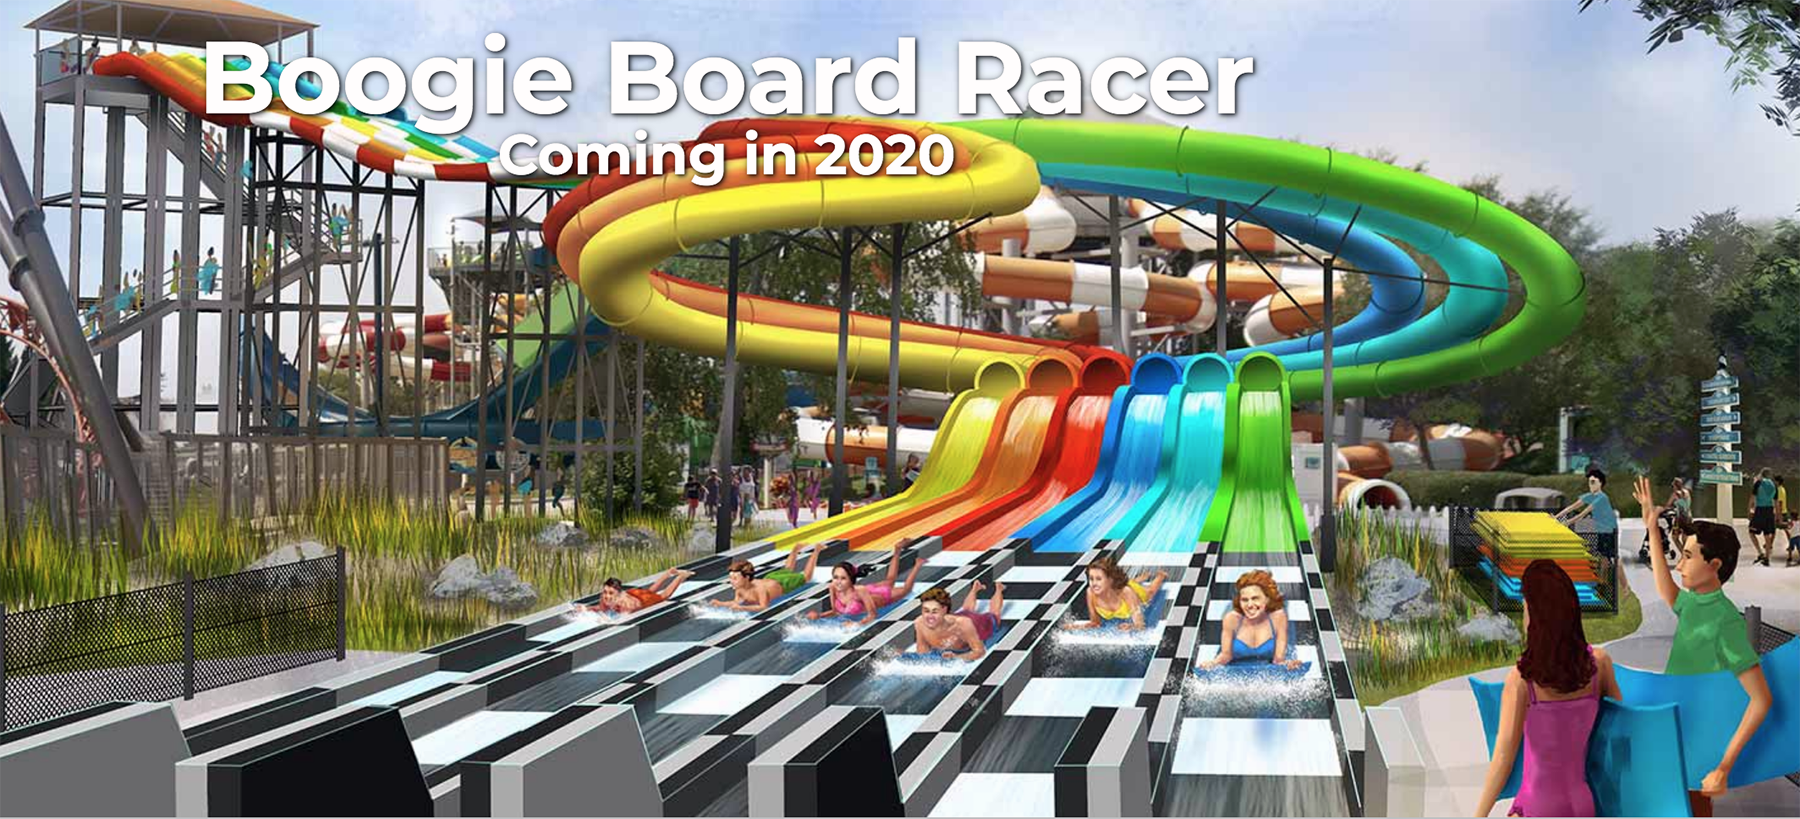 Carowinds Announces New Attractions for 2020 - Fort Mill Sun